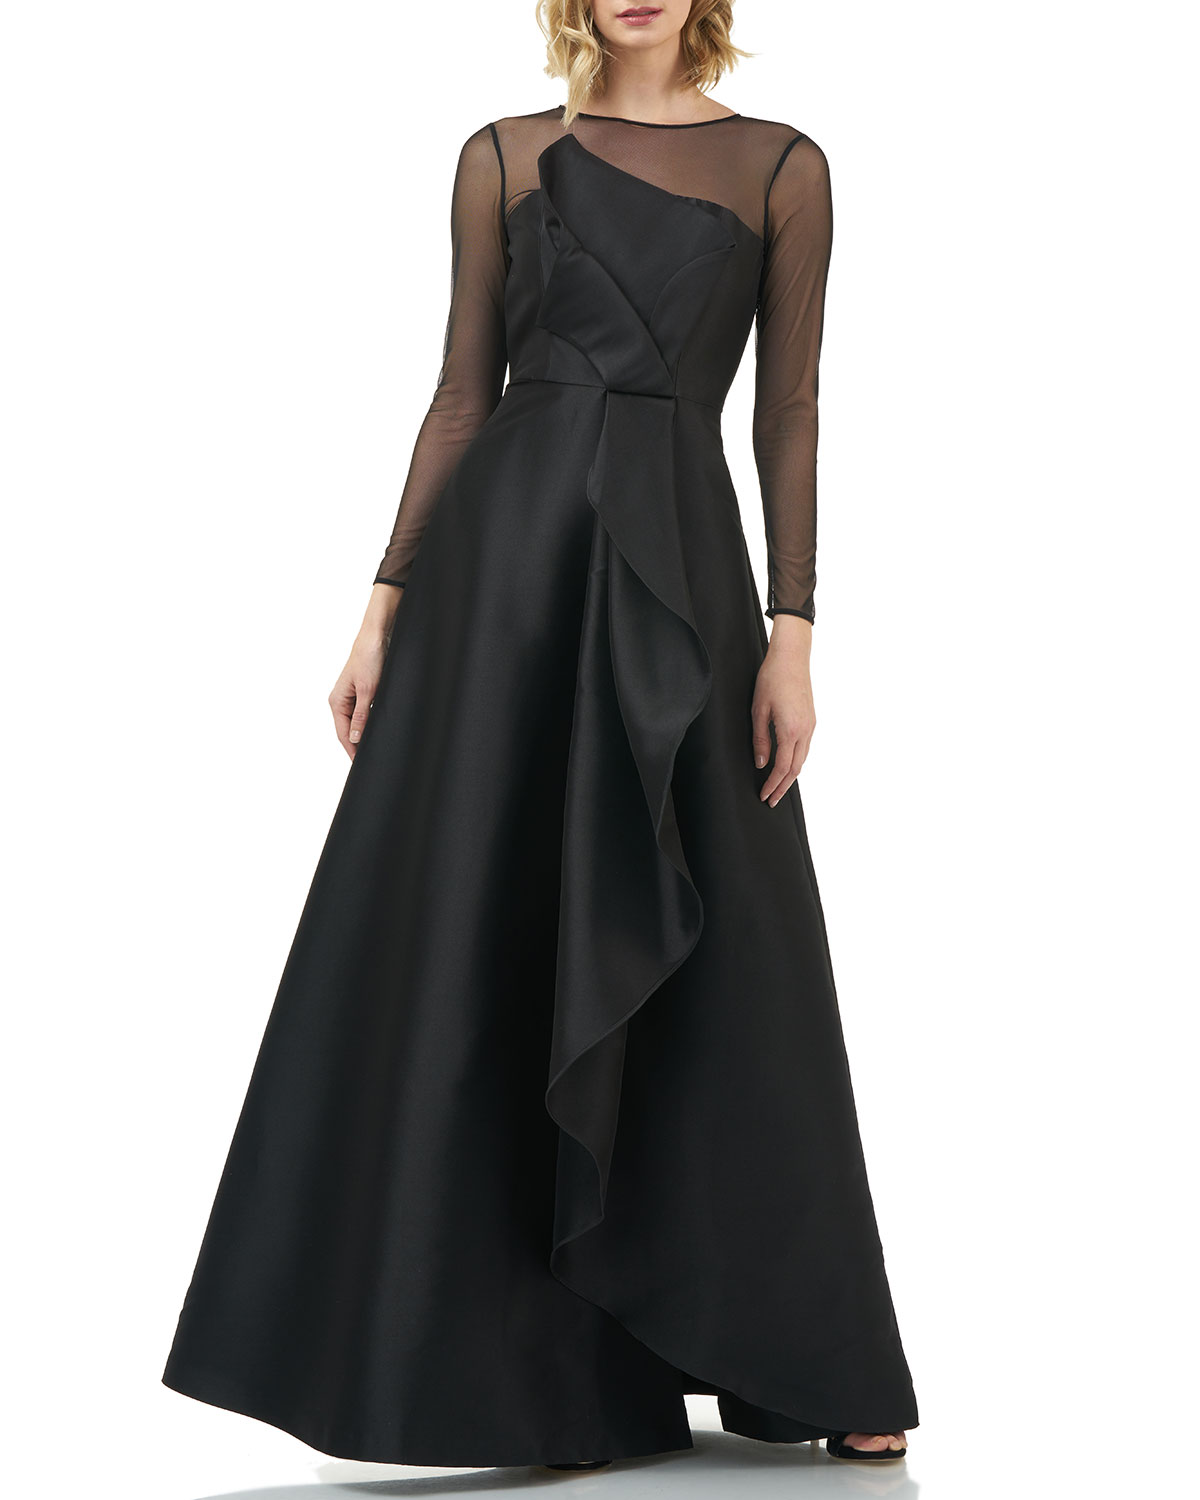 Kay Unger Tops ADELE ILLUSION SLEEVE MIKADO A-LINE GOWN W/ CASCADING RUFFLE DETAIL